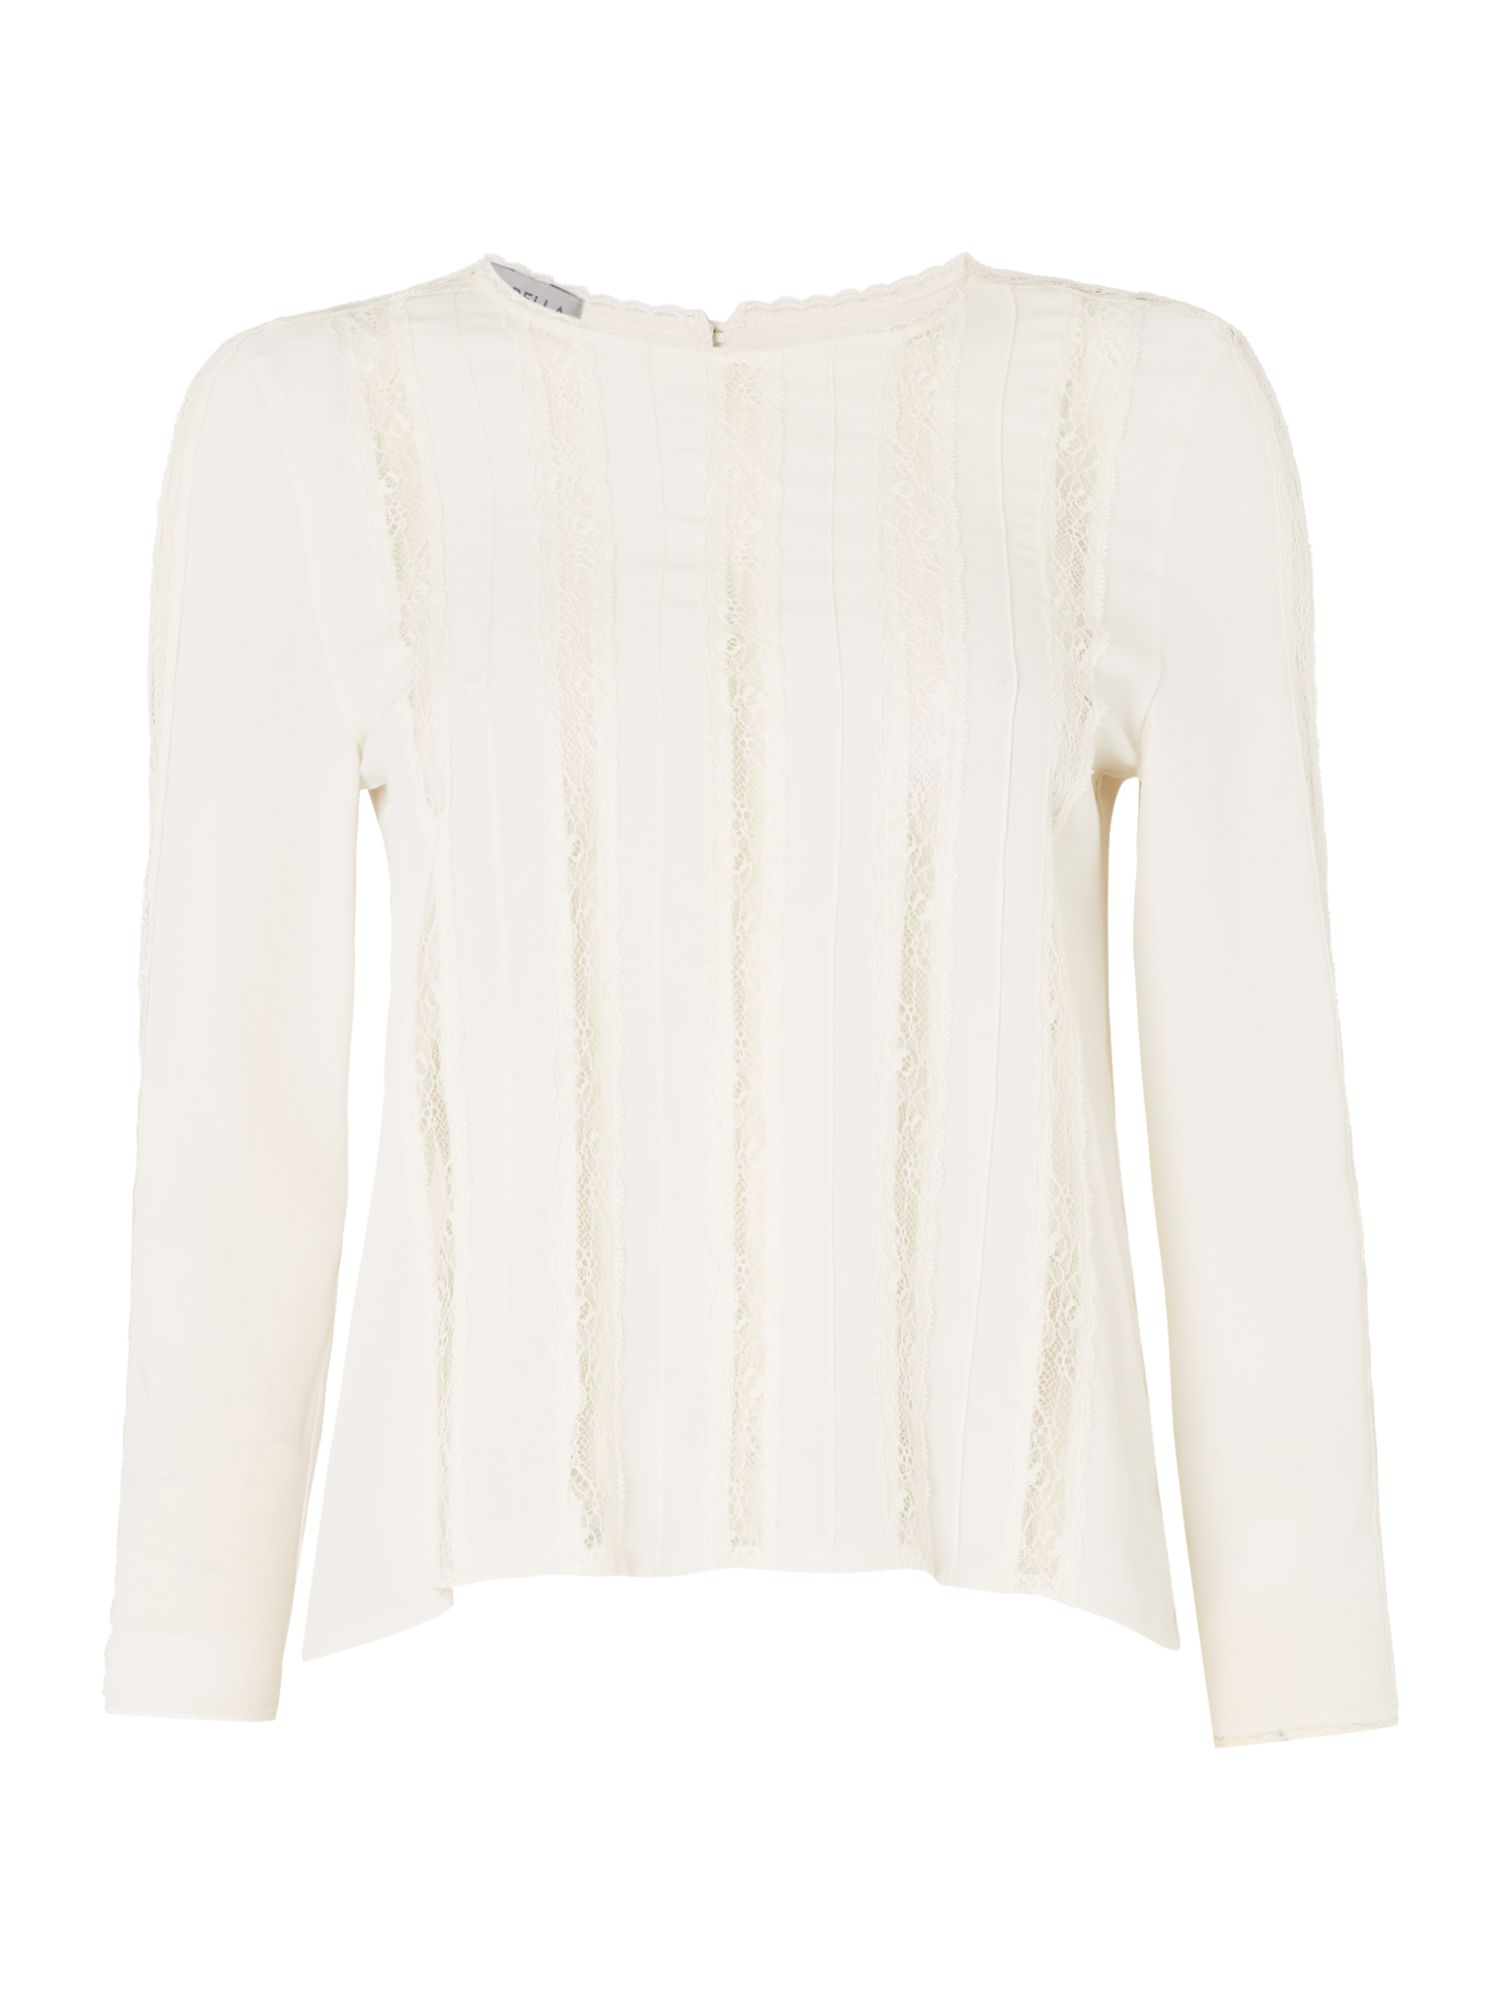 Marella Toga lace blouse, Cream